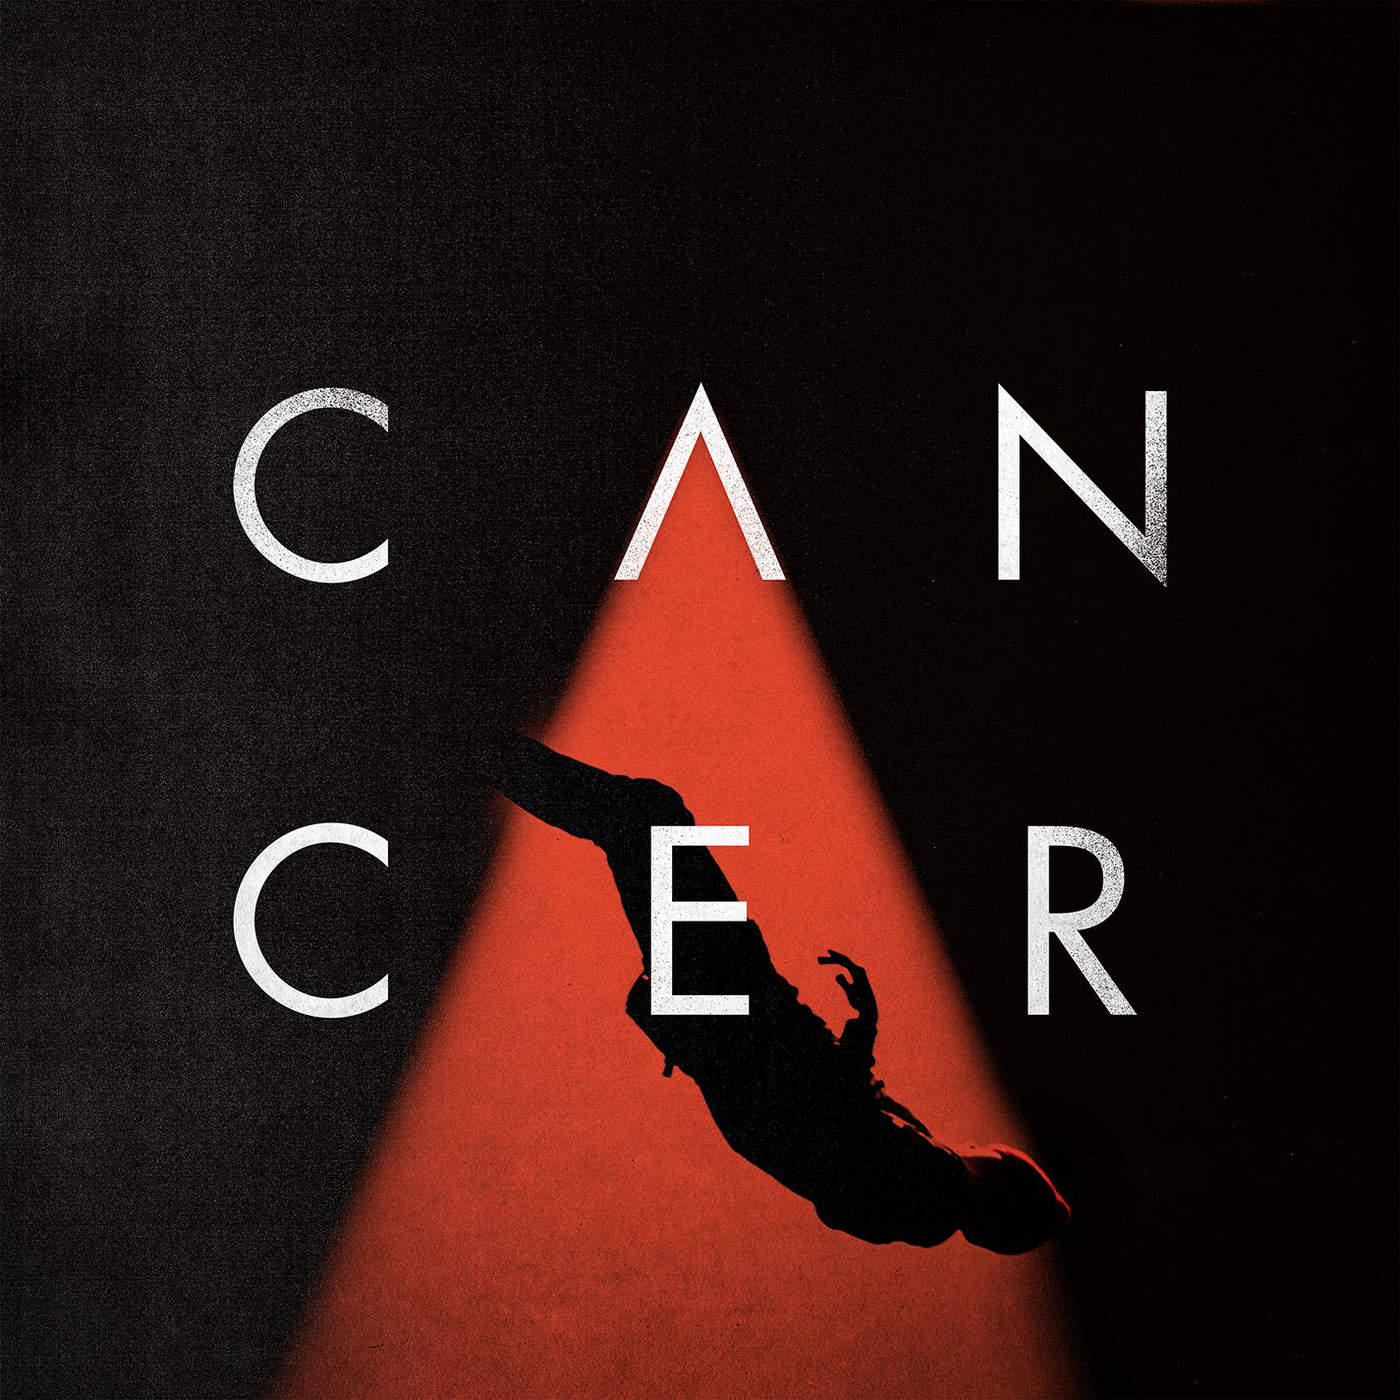 The cover of Cancer by Twenty One Pilots, originally recorded by My Chemical Romance. Image from itunes.apple.com